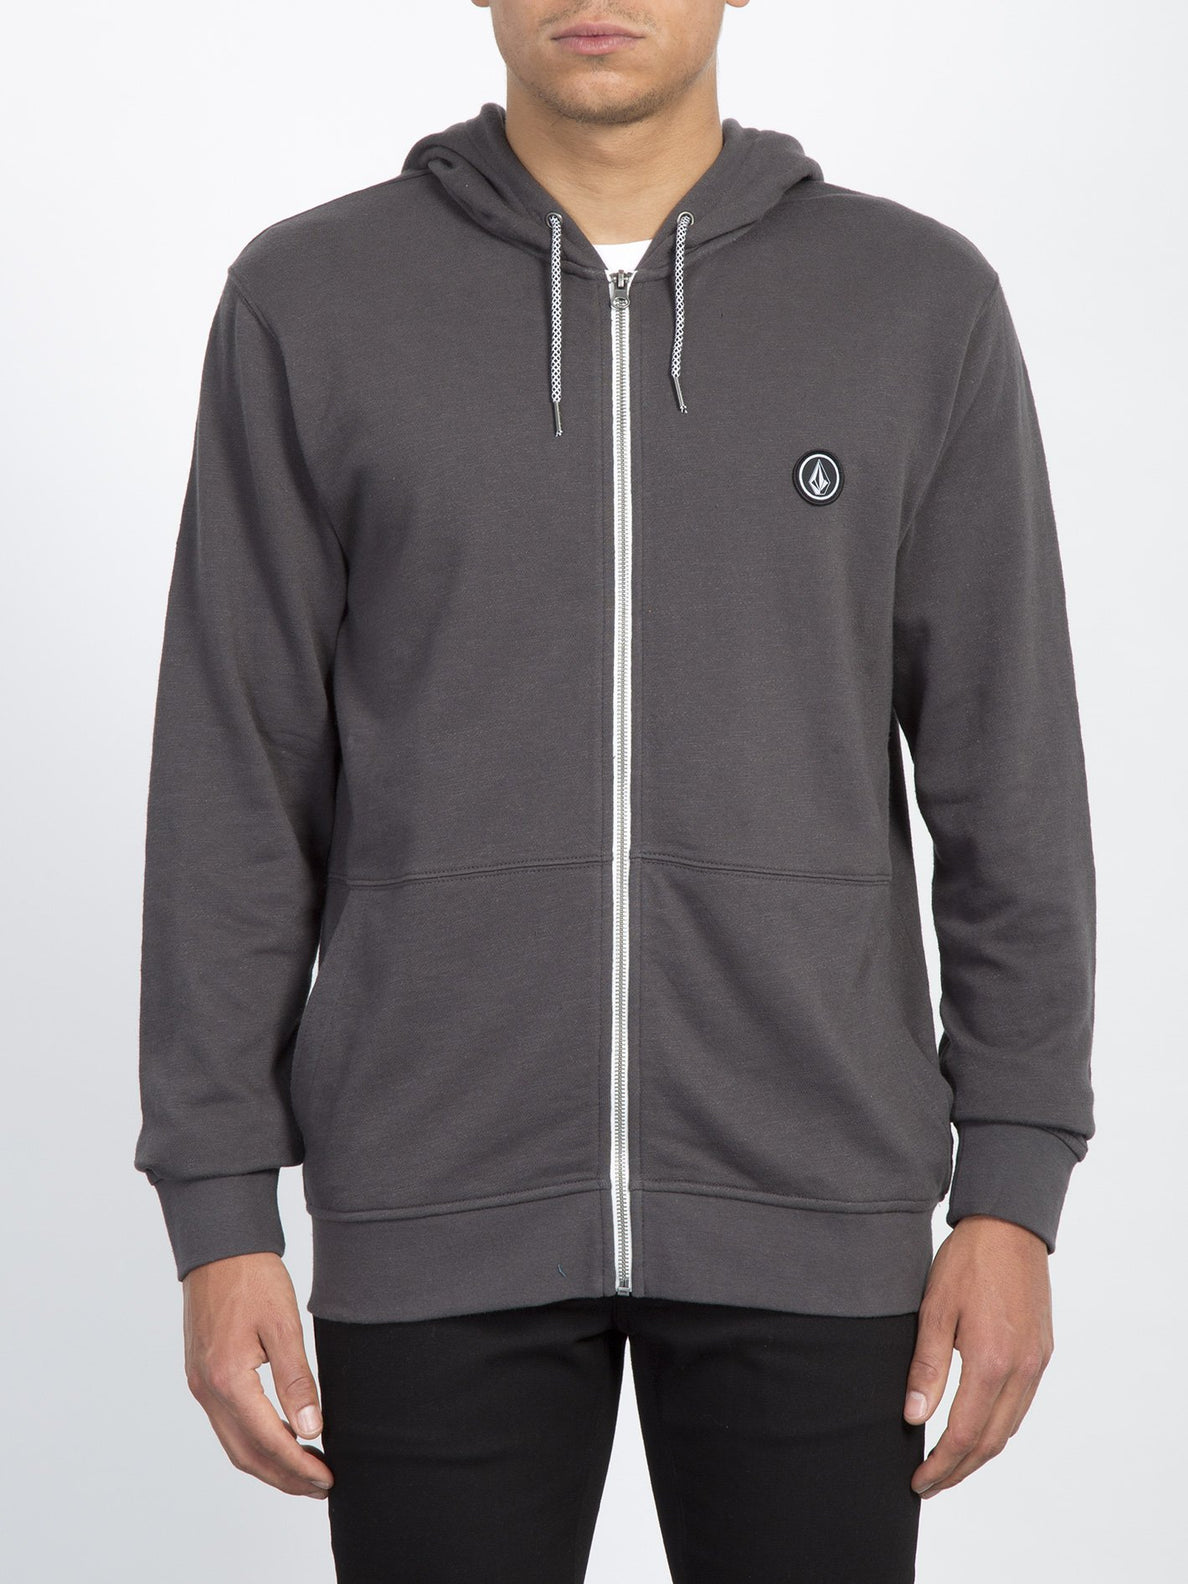 Litewarp Zip Sweater  - Heather Black